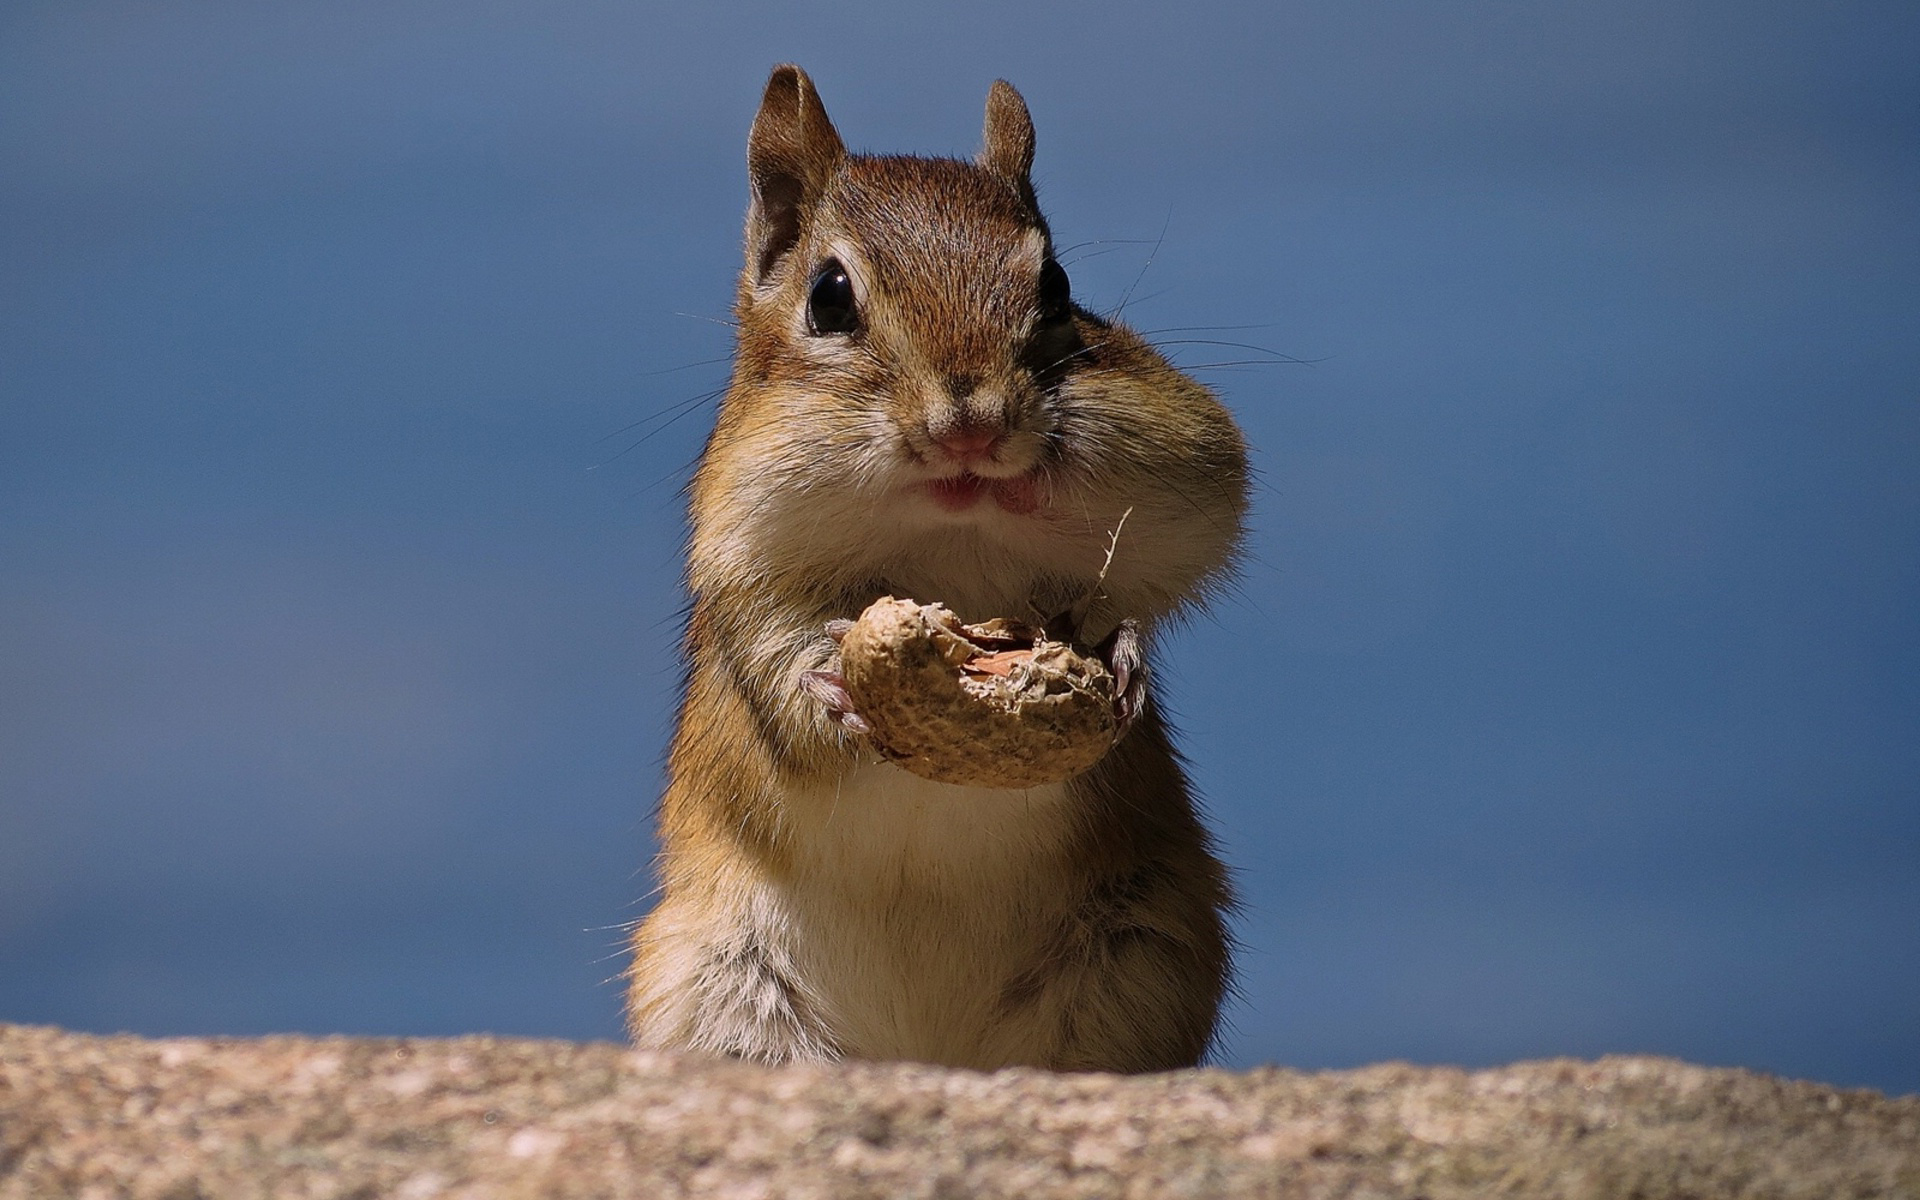 Eating Walnut Squirral